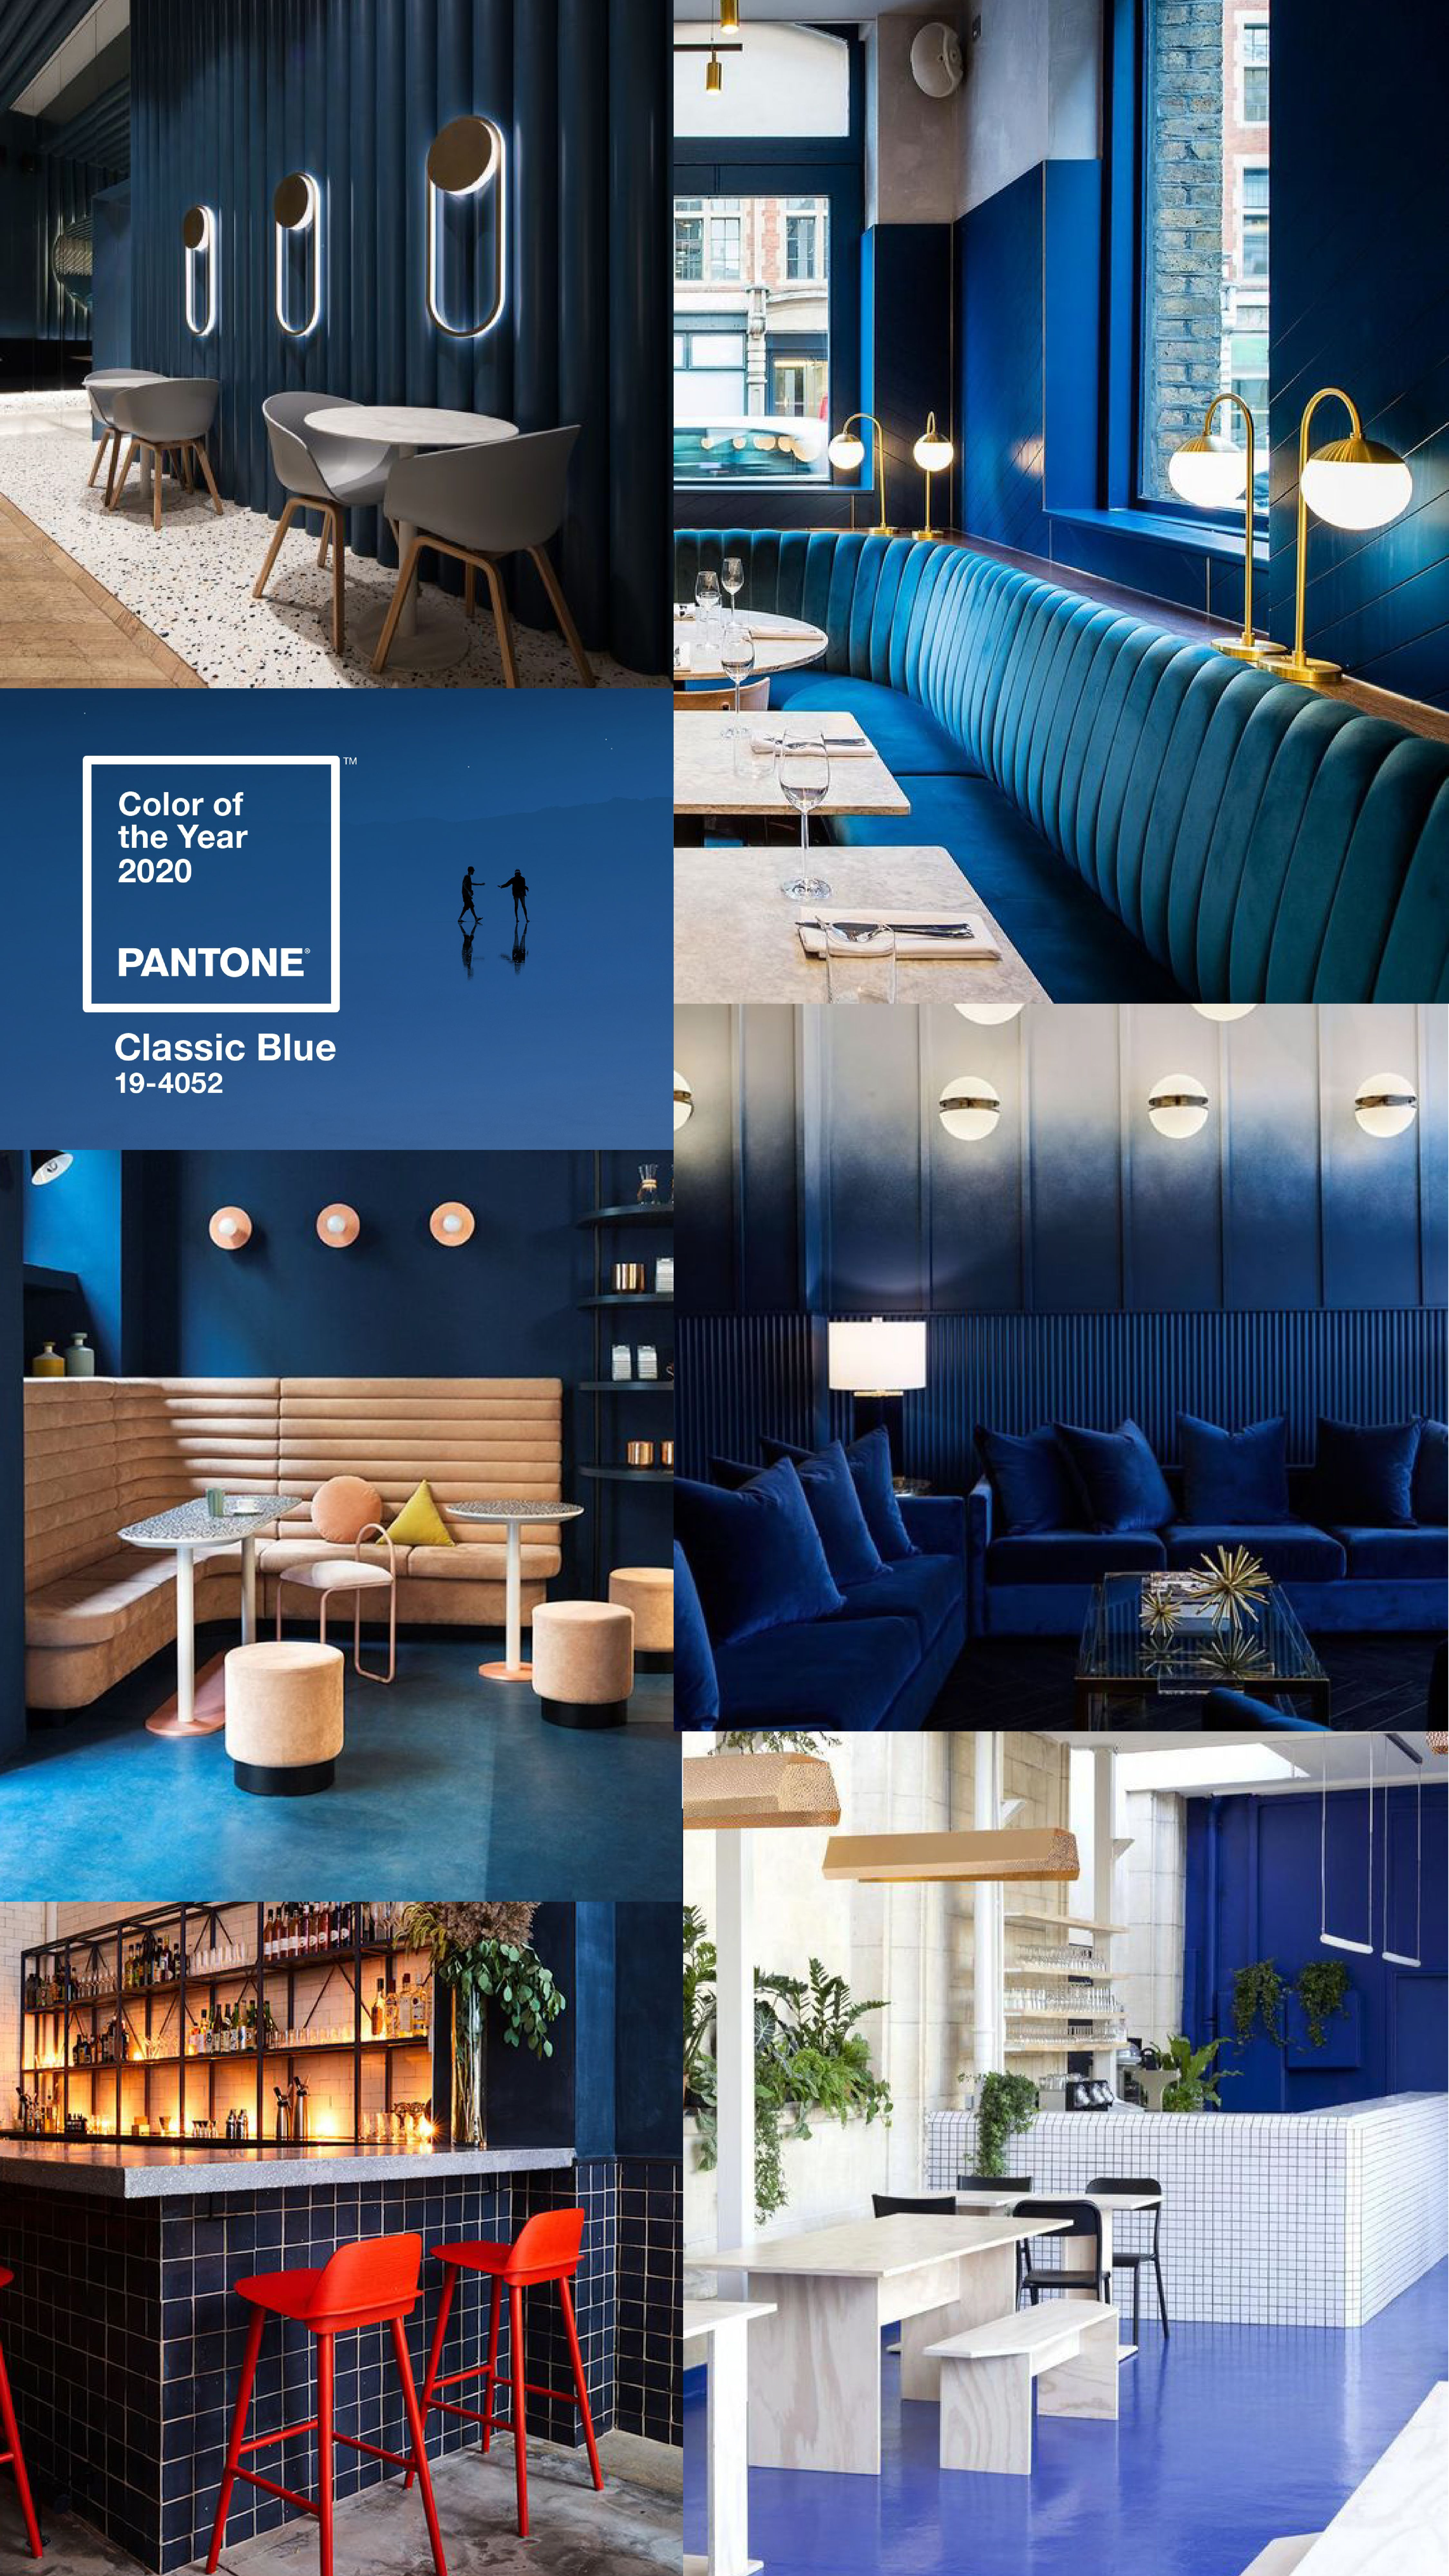 Restaurant Bar And Cafe Interiors Inspired By The Pantone Color Of